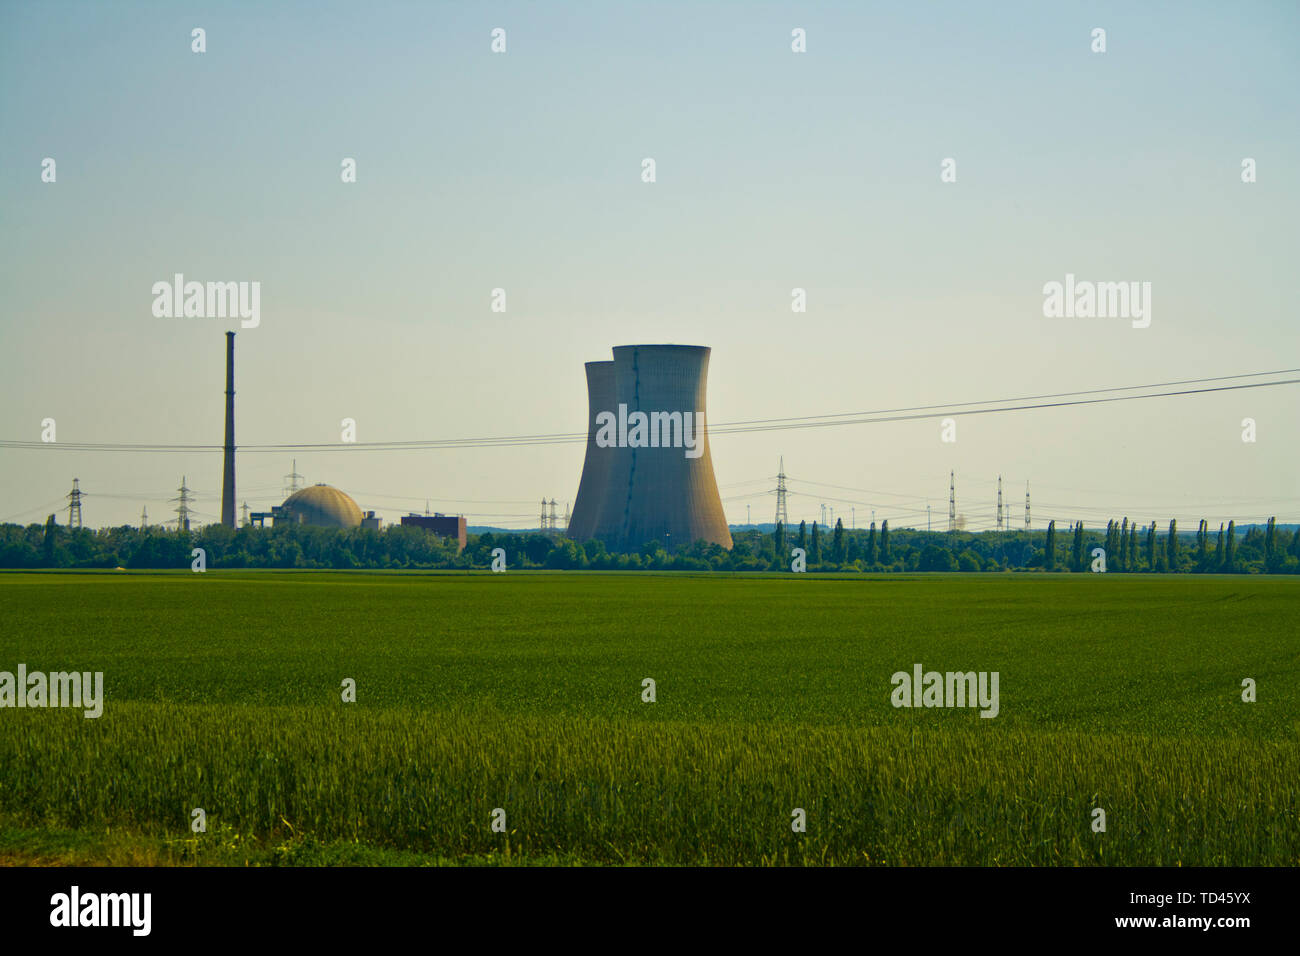 Panoramic view of Nuclear power plant - Stock Image